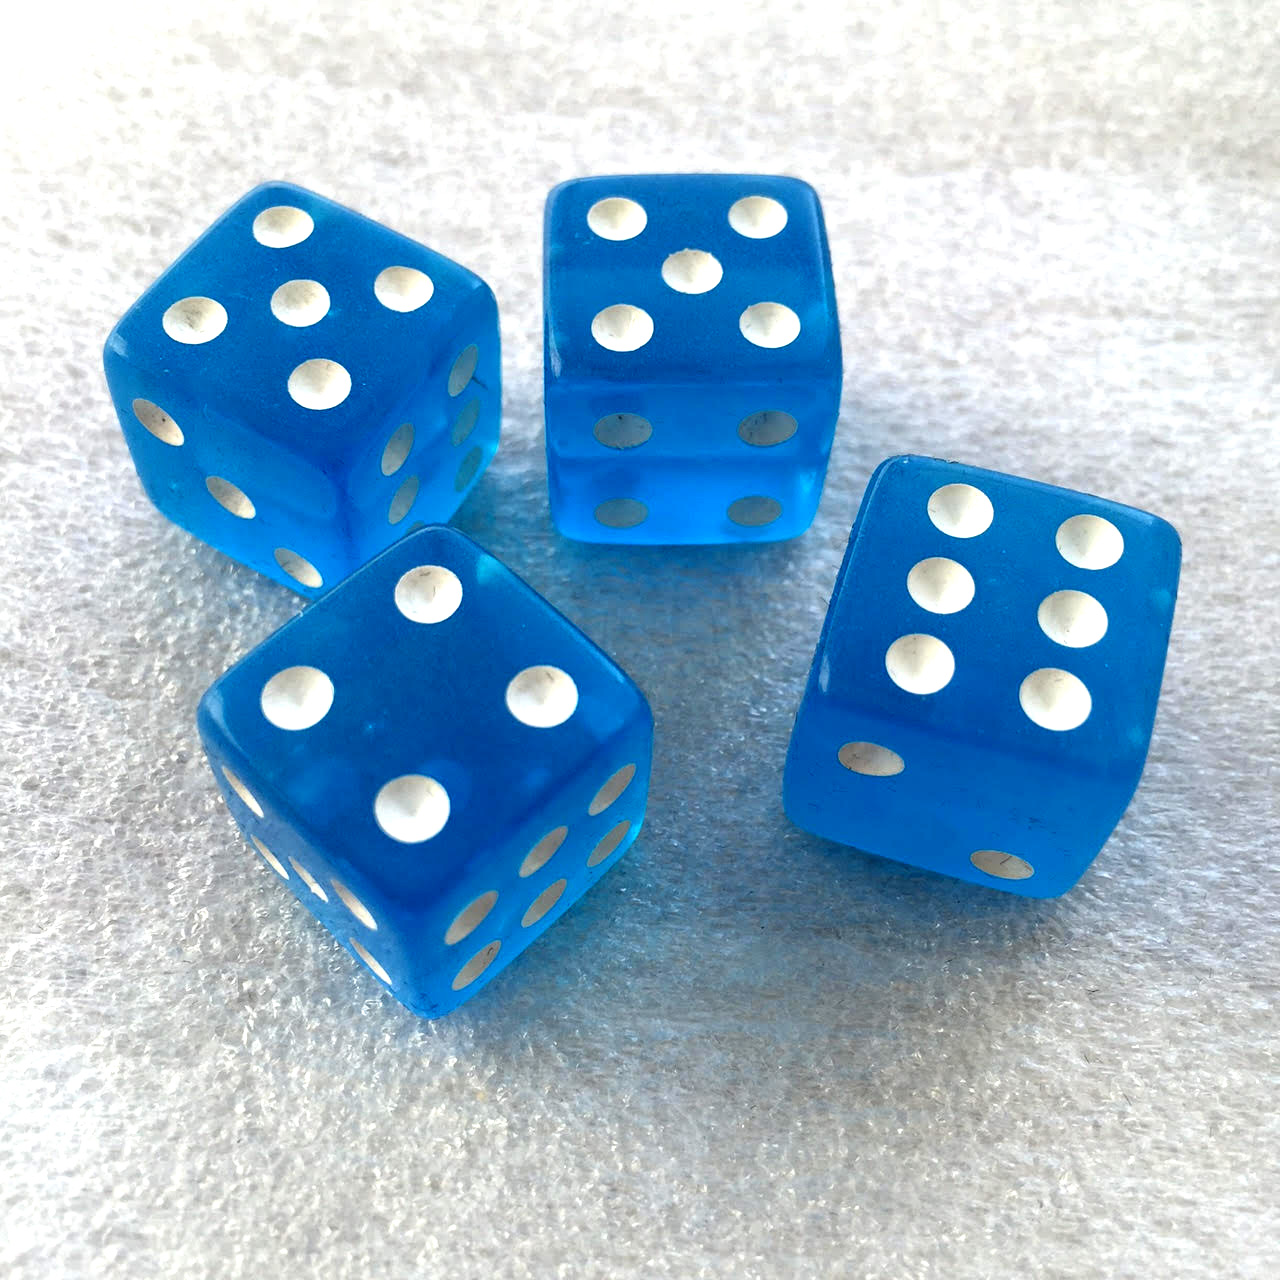 Blue dice (x4 in the basic bag).